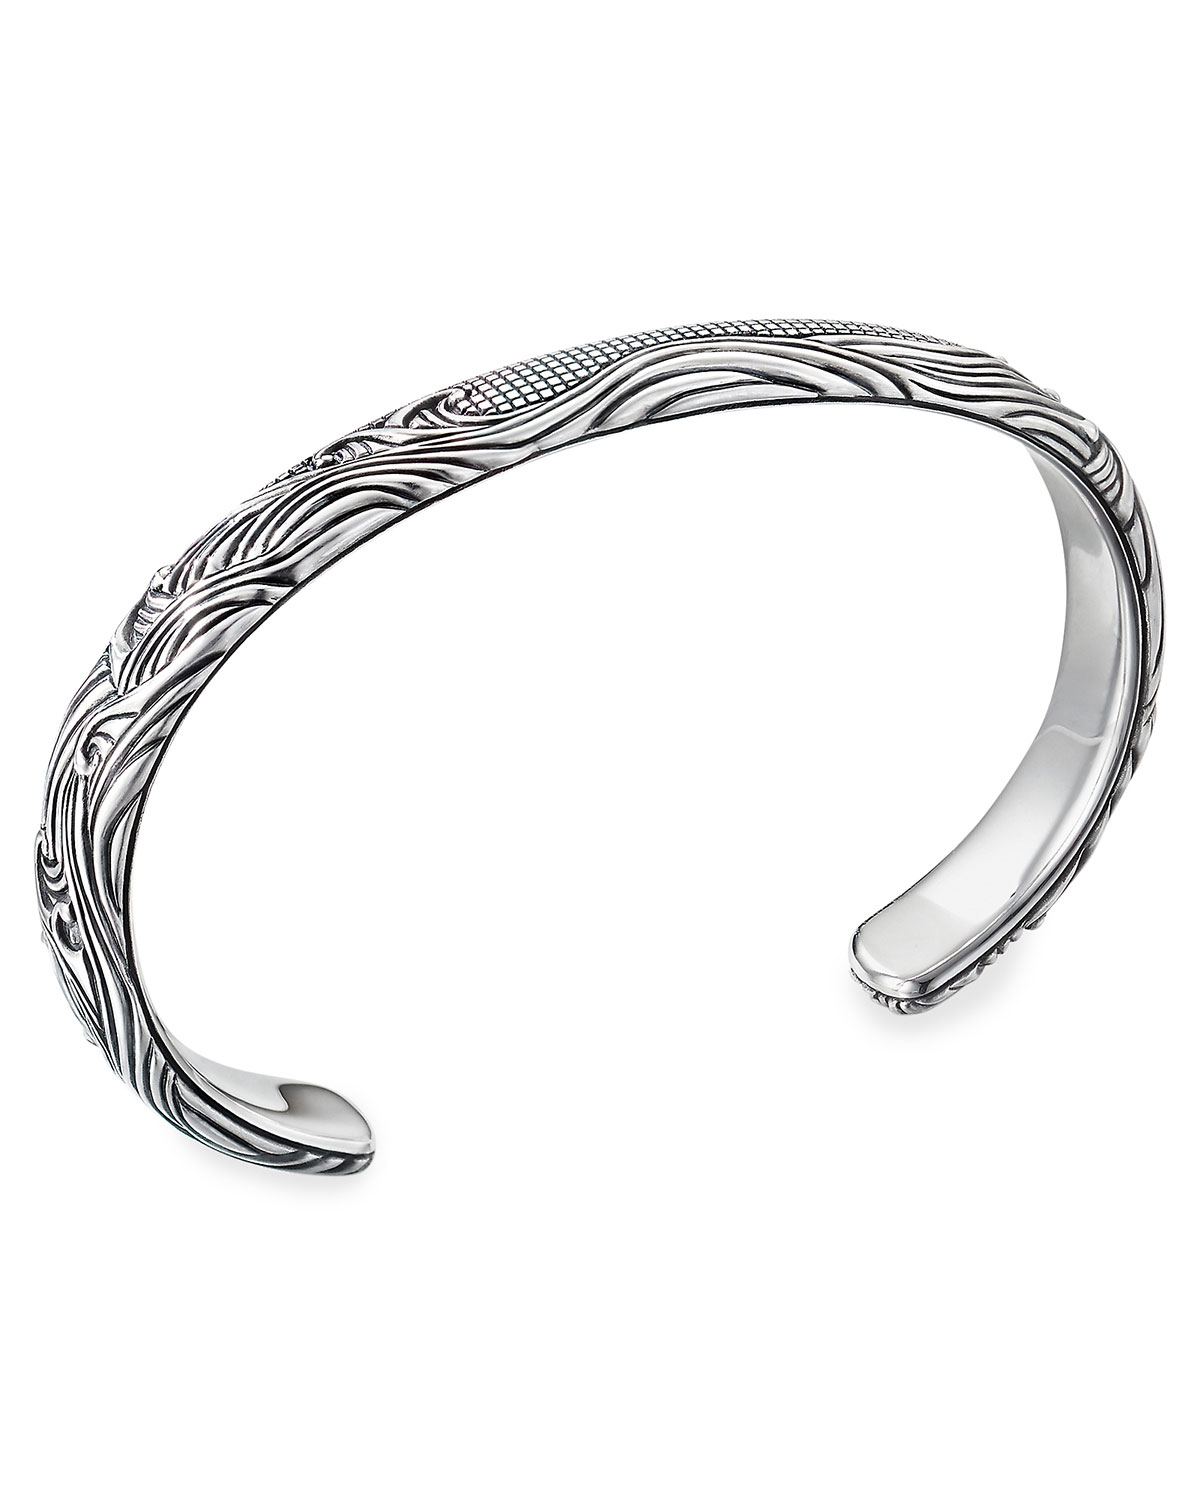 David Yurman Men's Waves Silver Cuff Bracelet